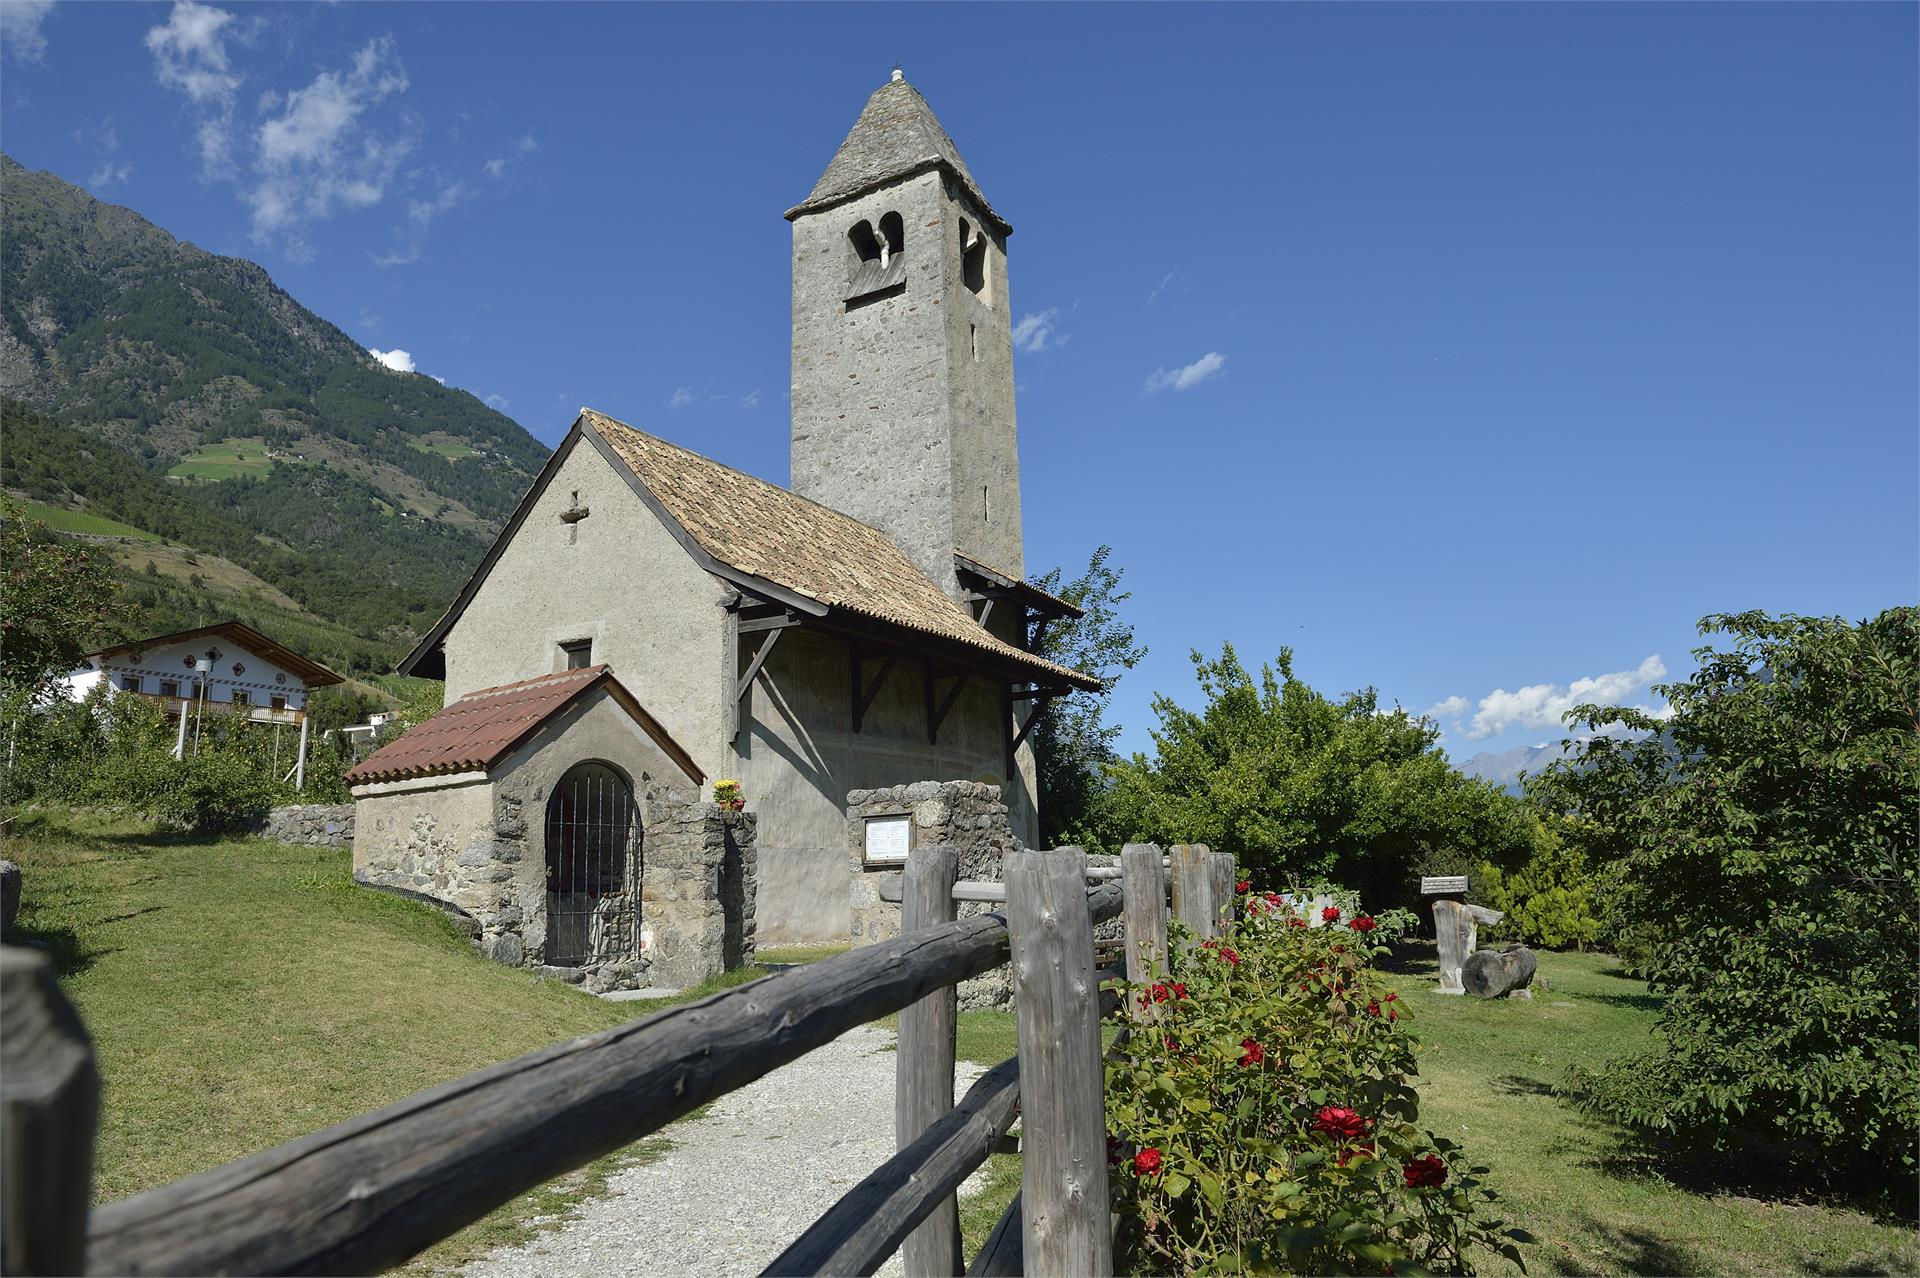 Church of San Procolo/St. Prokulus in Naturno/Naturns